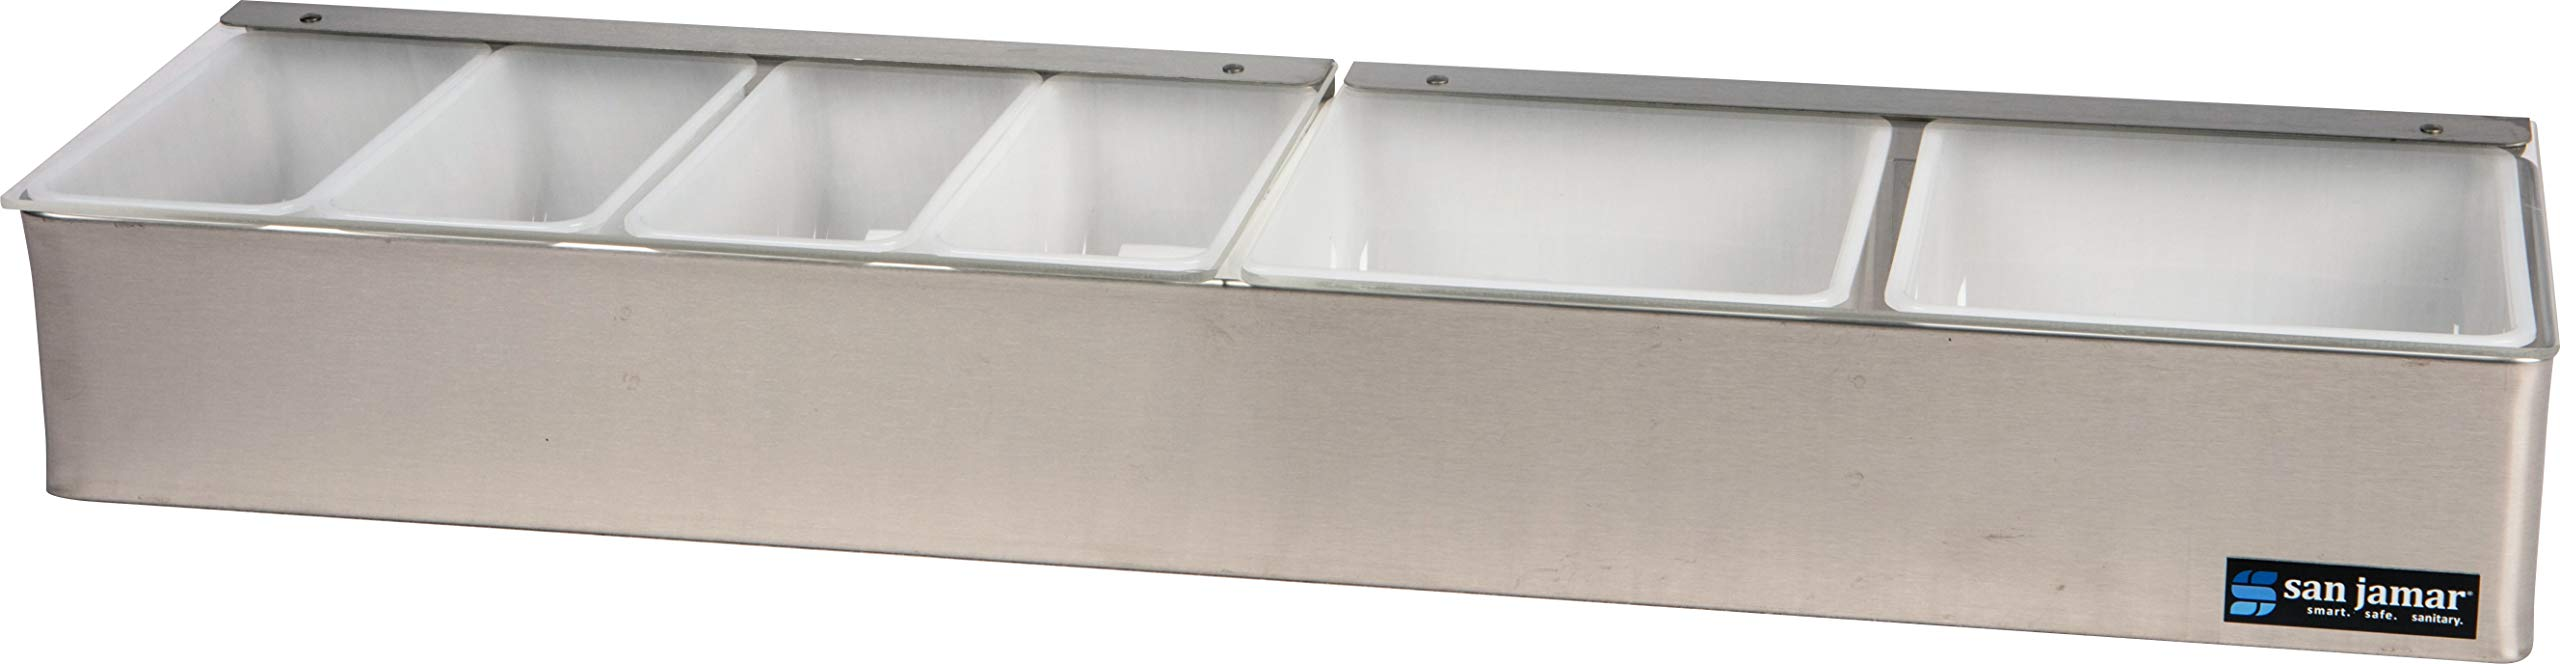 San Jamar B4246L Stainless Steel Non-Chilled Garnish Tray with Split Lid, 24'' Width x 3-1/2'' Height x 5-3/4'' Depth